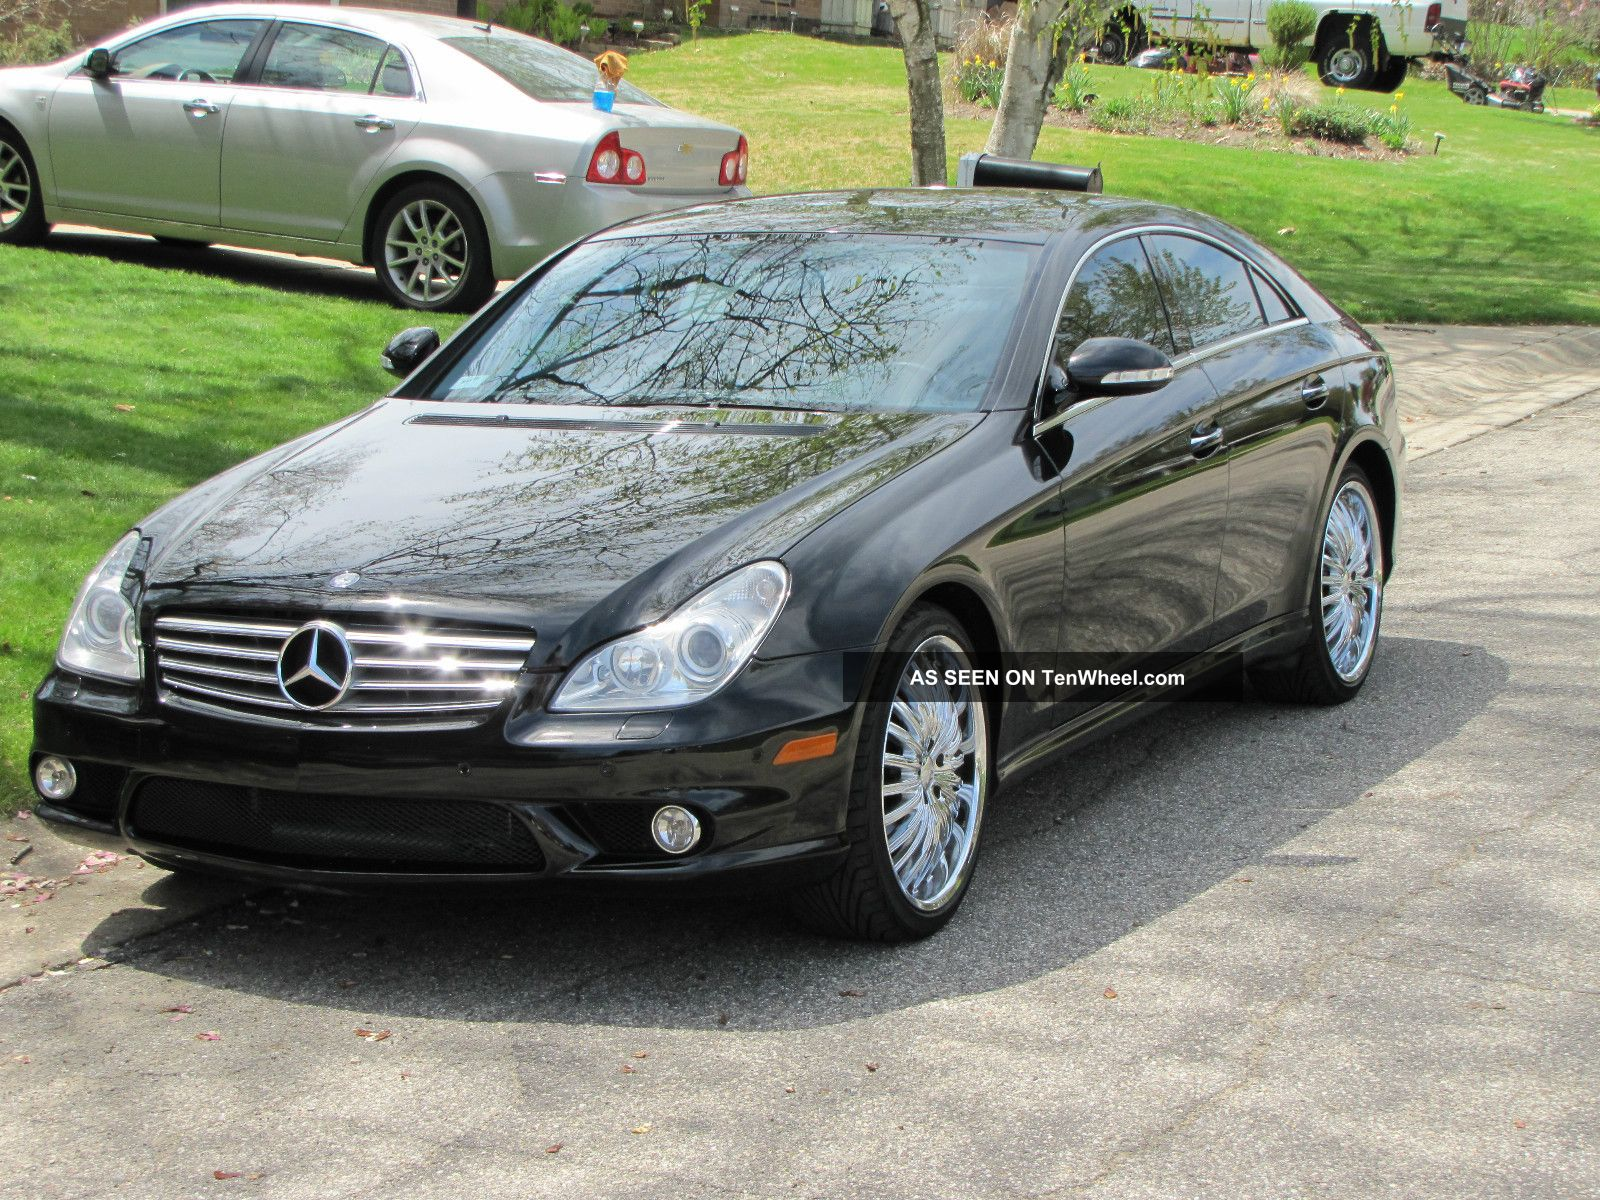 2006 Mercedes Benz Cls 500 Amg Sport Edition CLS-Class photo